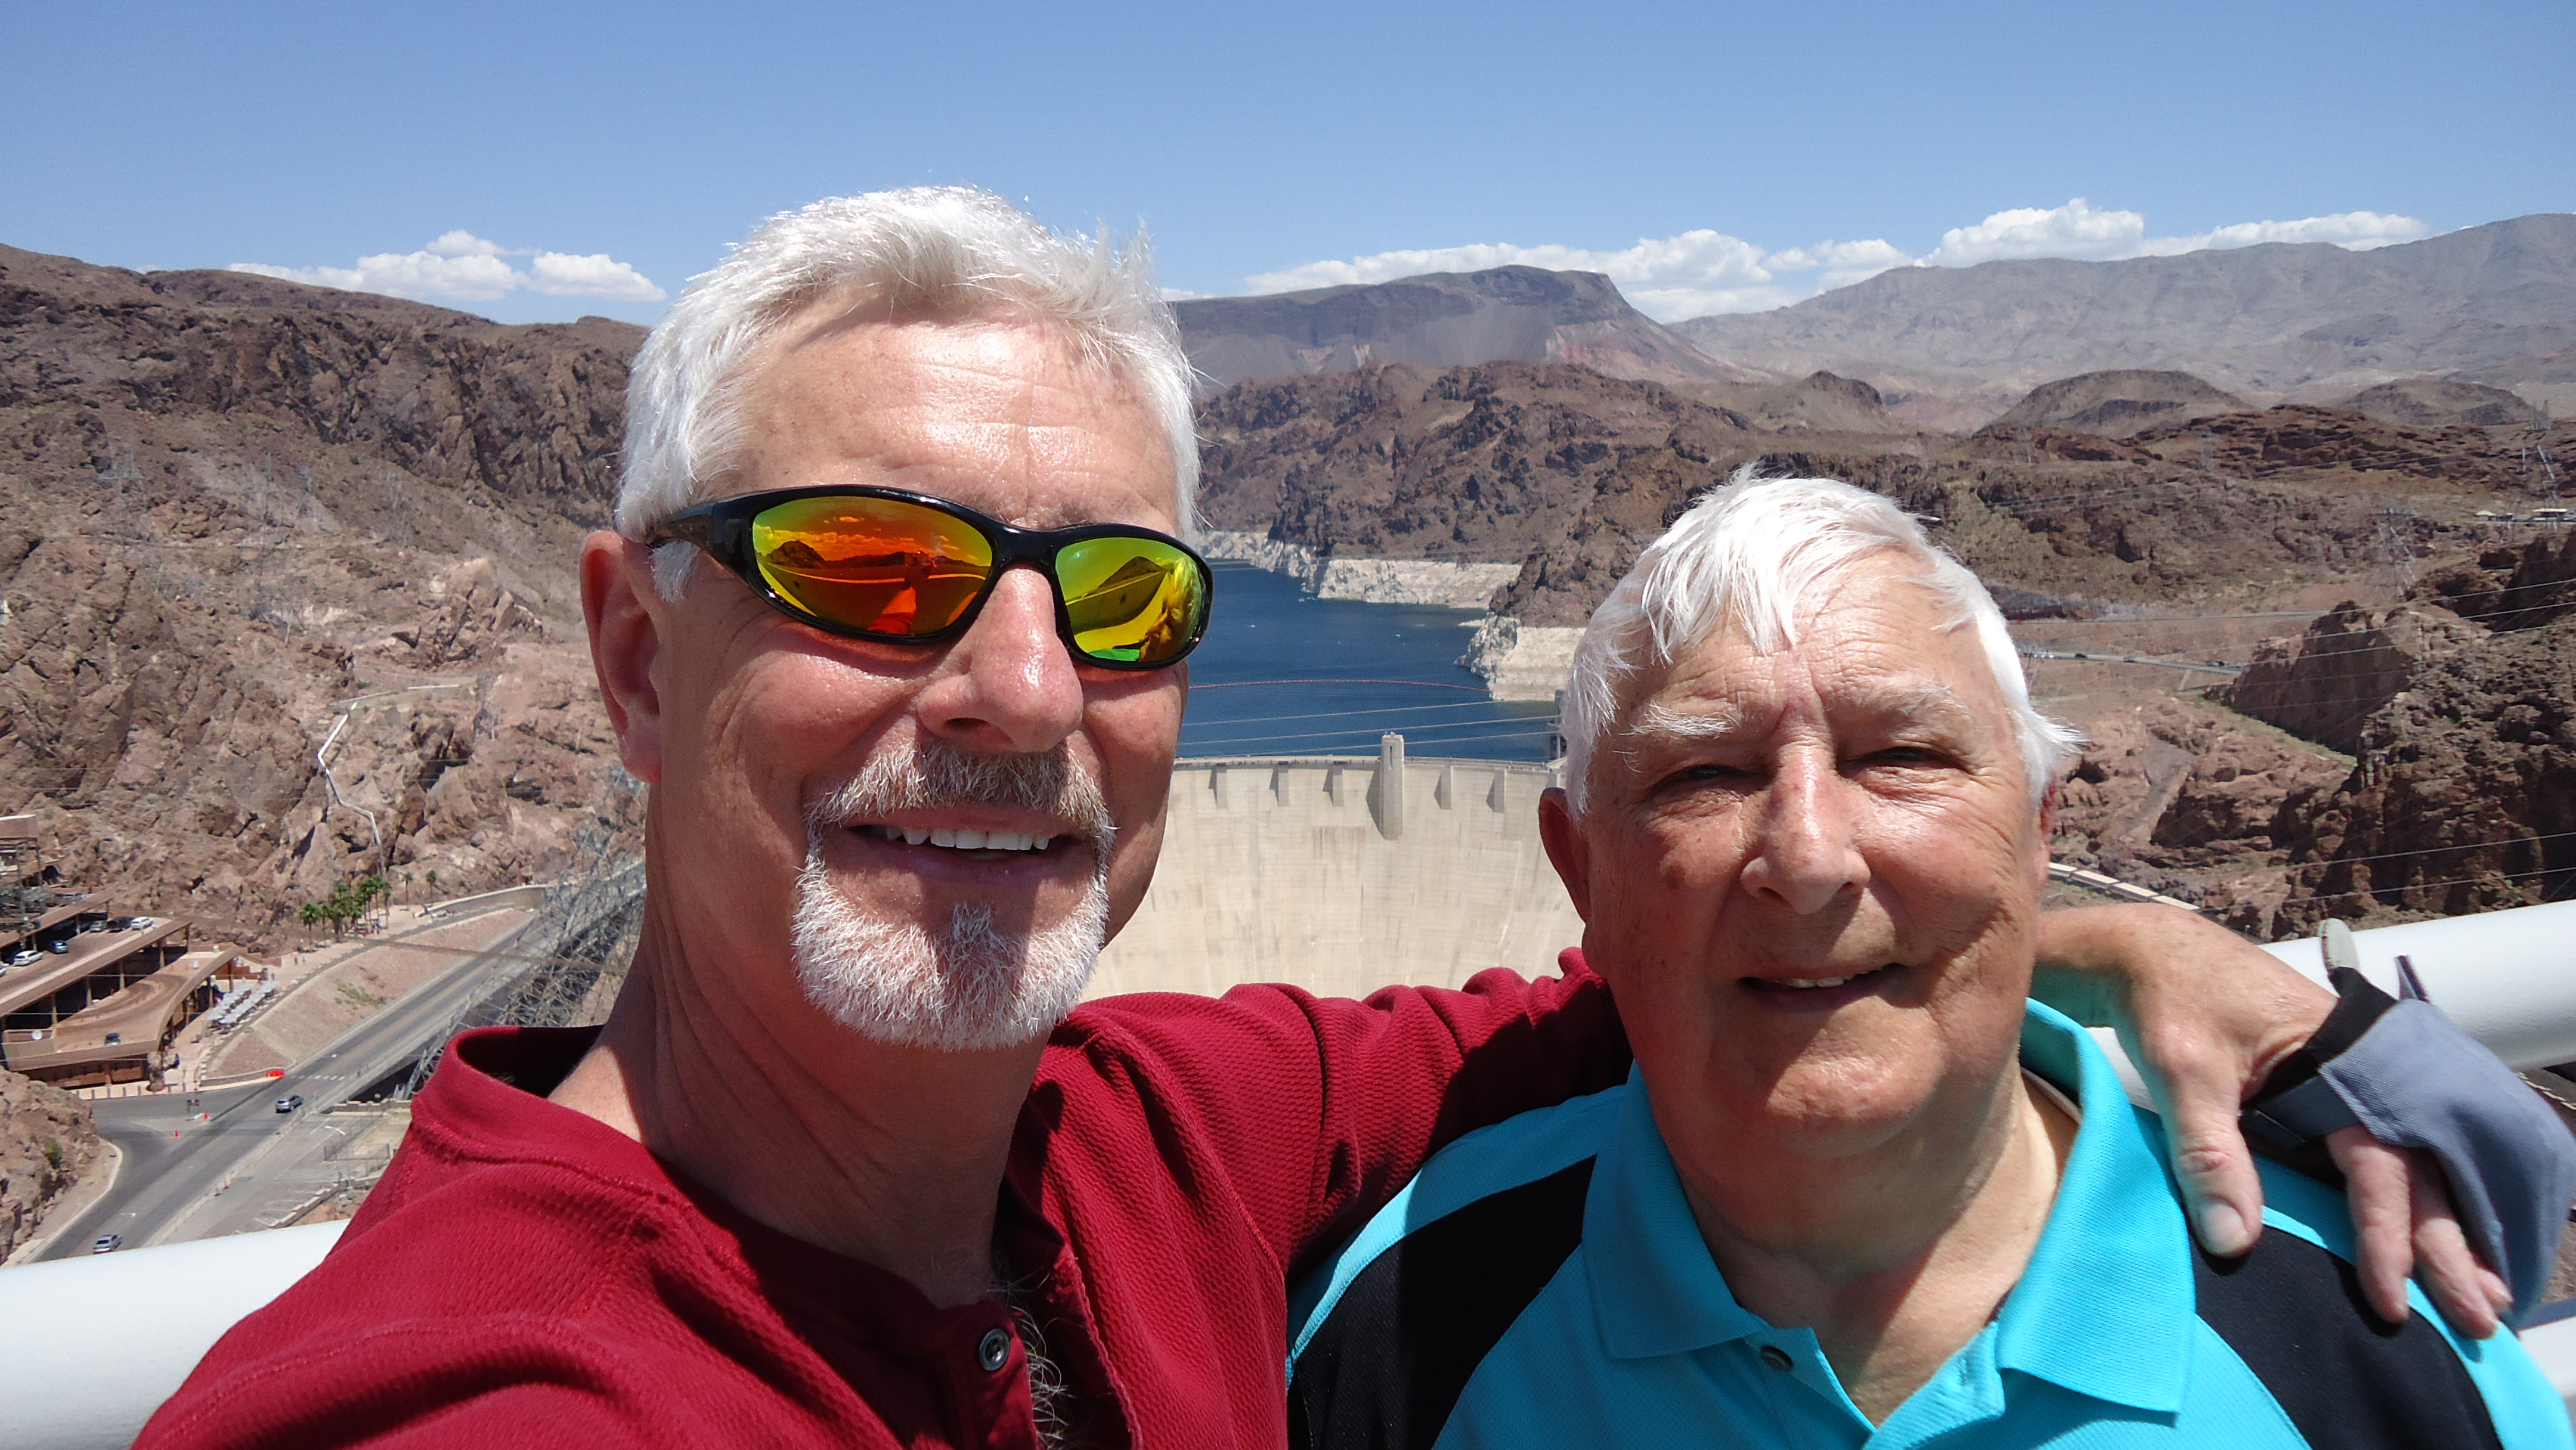 Vance and Pappy at the Hoover Dam